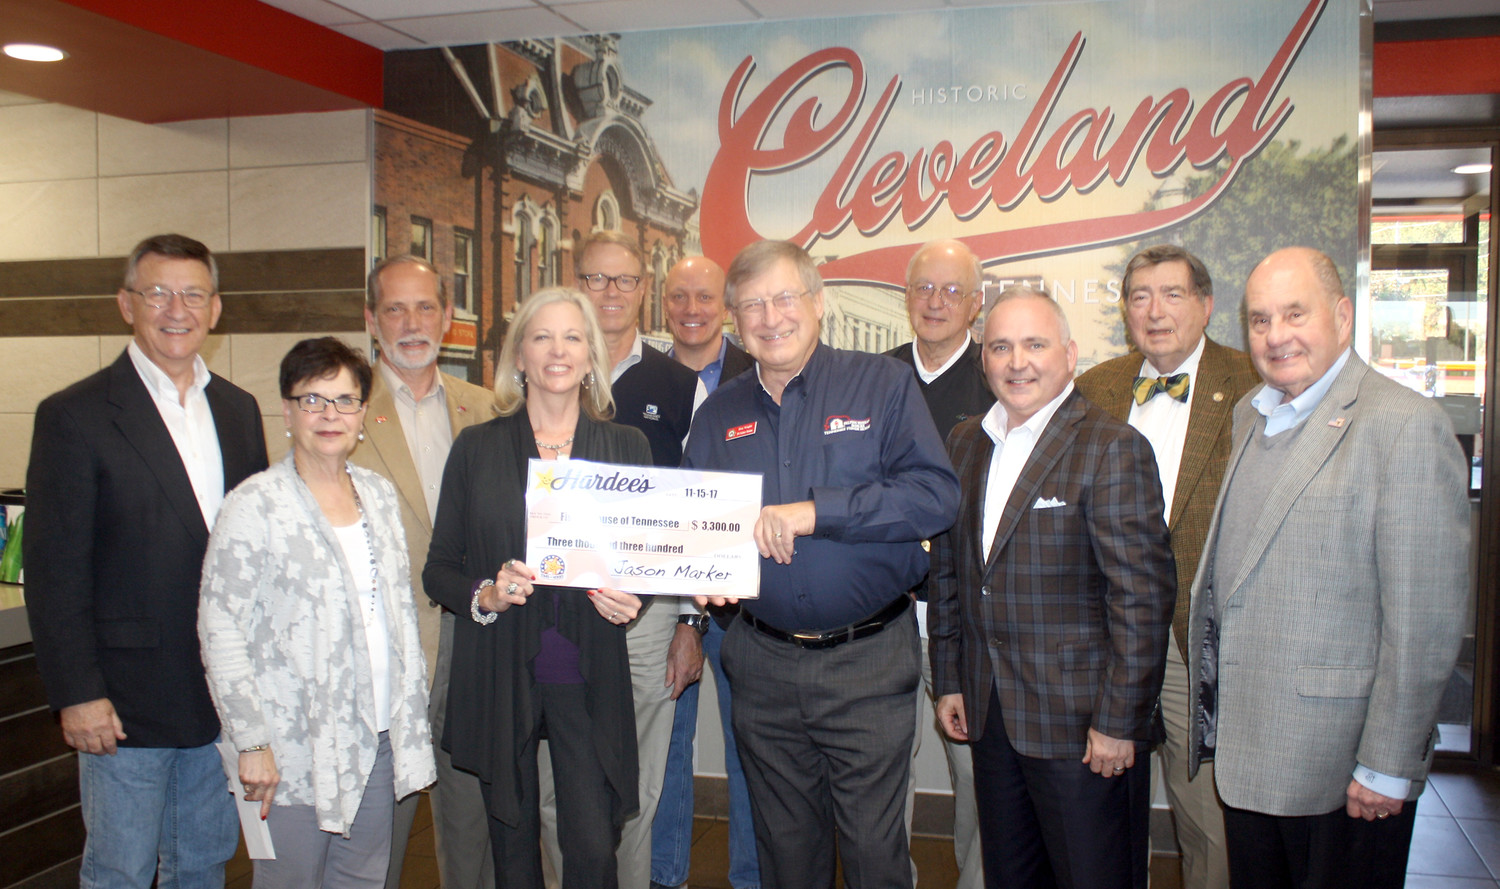 PARTICIPATING IN THURSDAY's distribution of funds from this year's Stars for Heroes by regional Hardee's restaurants were, from left, State Rep. Dan Howell, J&S Restaurant's Brenda Eckard, Bradley County Mayor D. Gary Davis, Julia Scoggins and Mark Johnson of J&S Restaurants, Veteran's Home Council Co-Chair Mark Hall, Don Wright of the Tennessee Fisher House, Council Co-Chair Sid Heidel, State Rep. Kevin Brooks, Larry McDaris of the Bradley County Veterans Affairs Office, and Cleveland Mayor Tom Rowland.